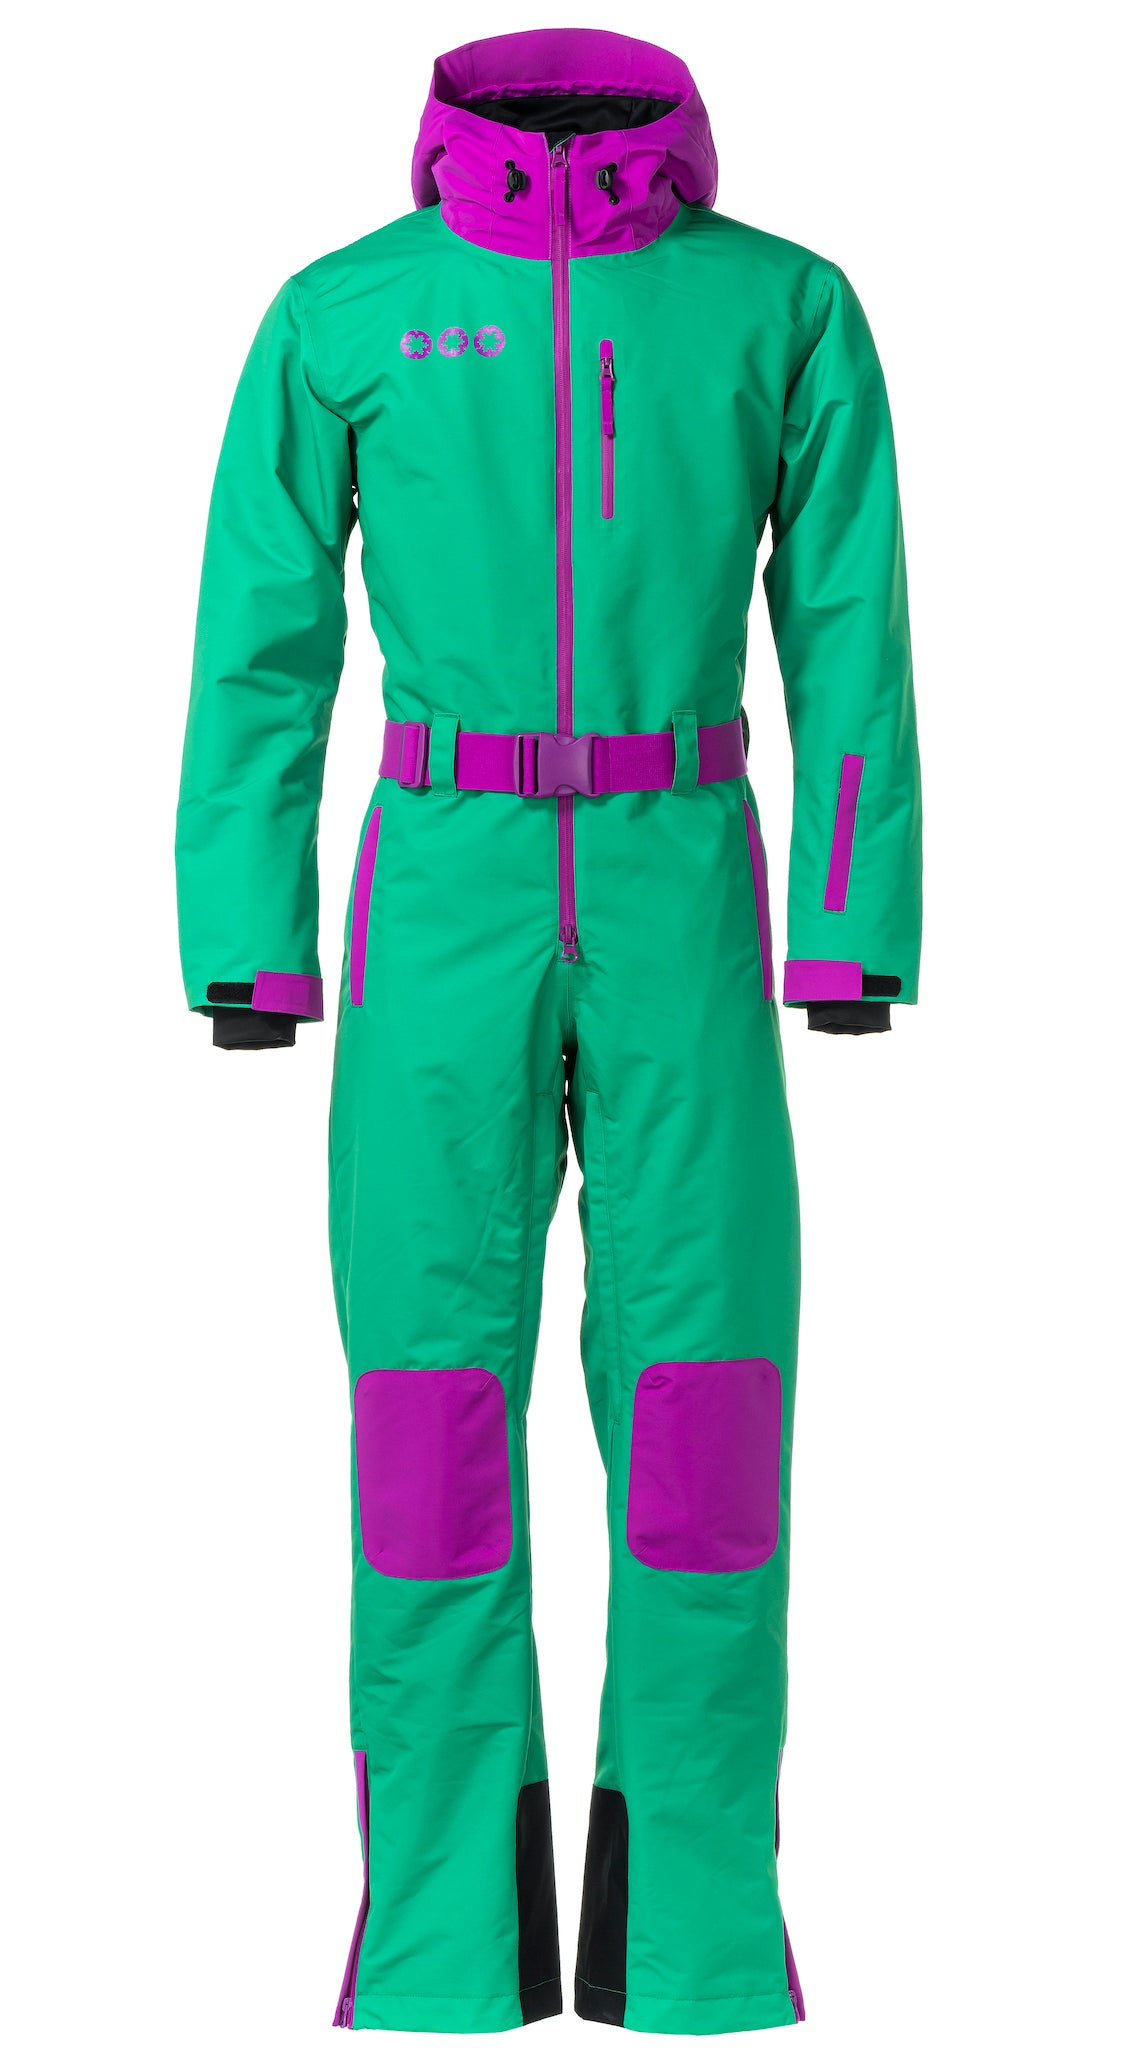 The Hulk | Unisex Ski Suit - Willyfinder